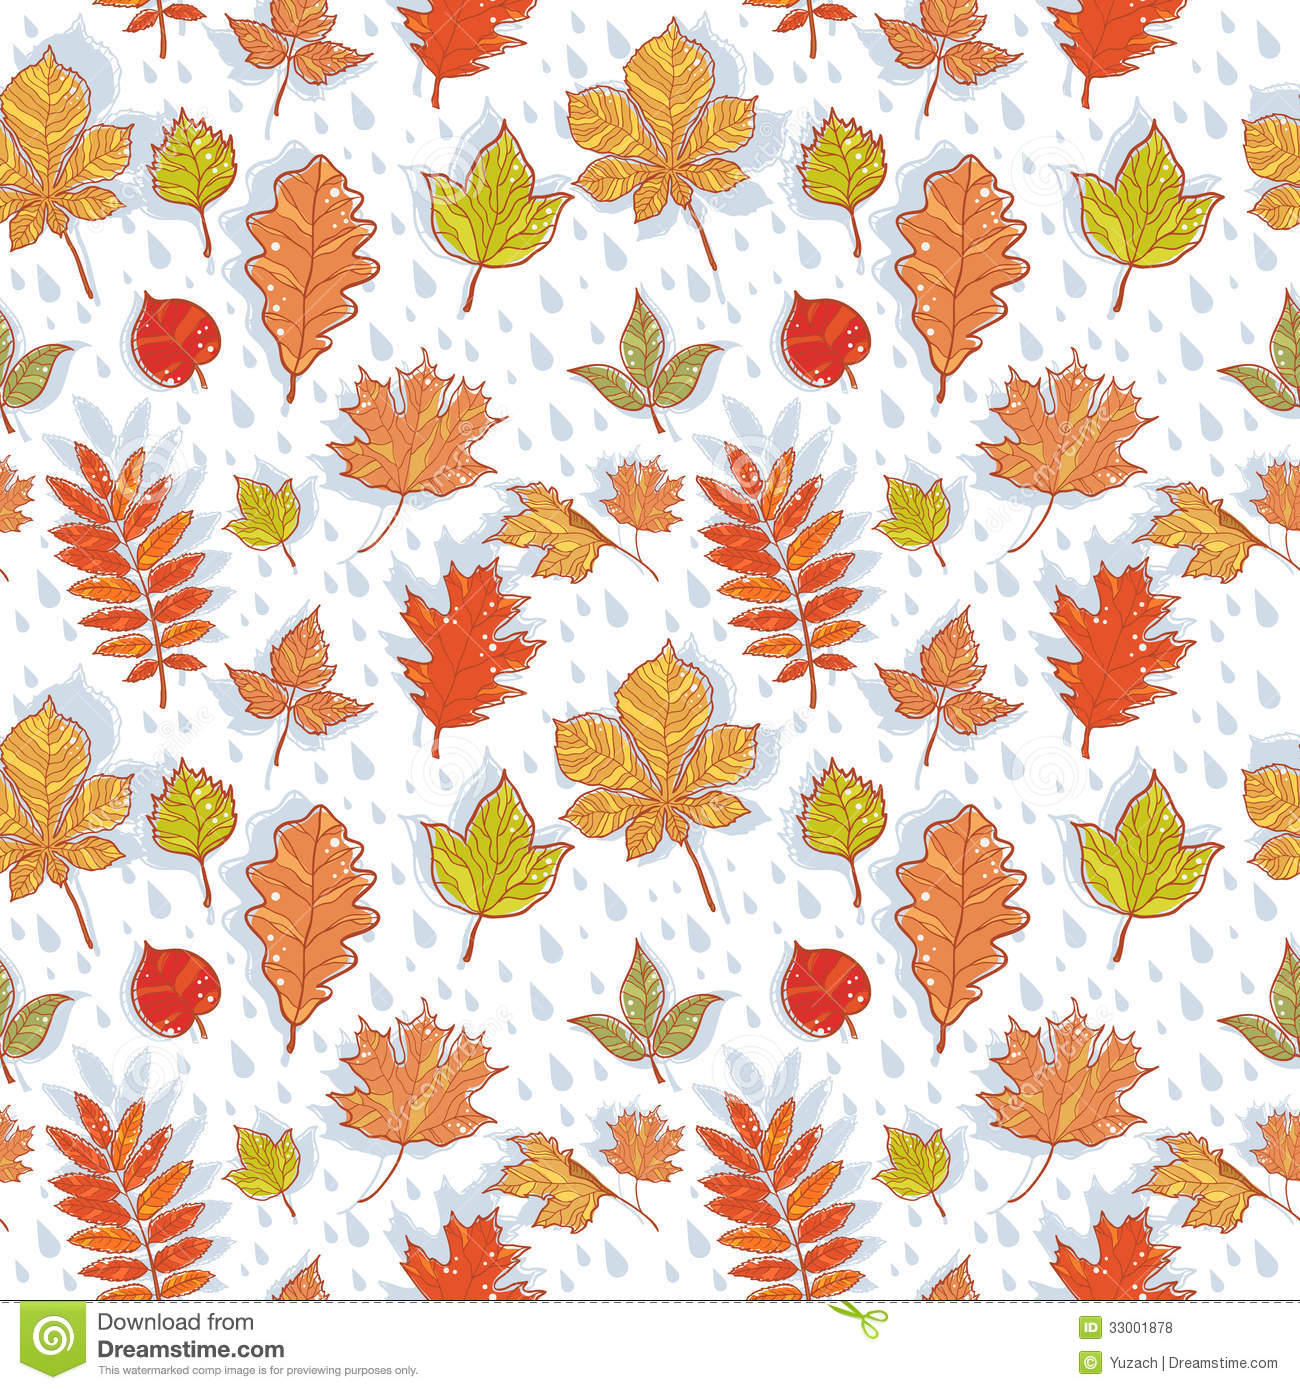 - Free Download Fall Leaf Pattern Background Autumn Leaves Colorful